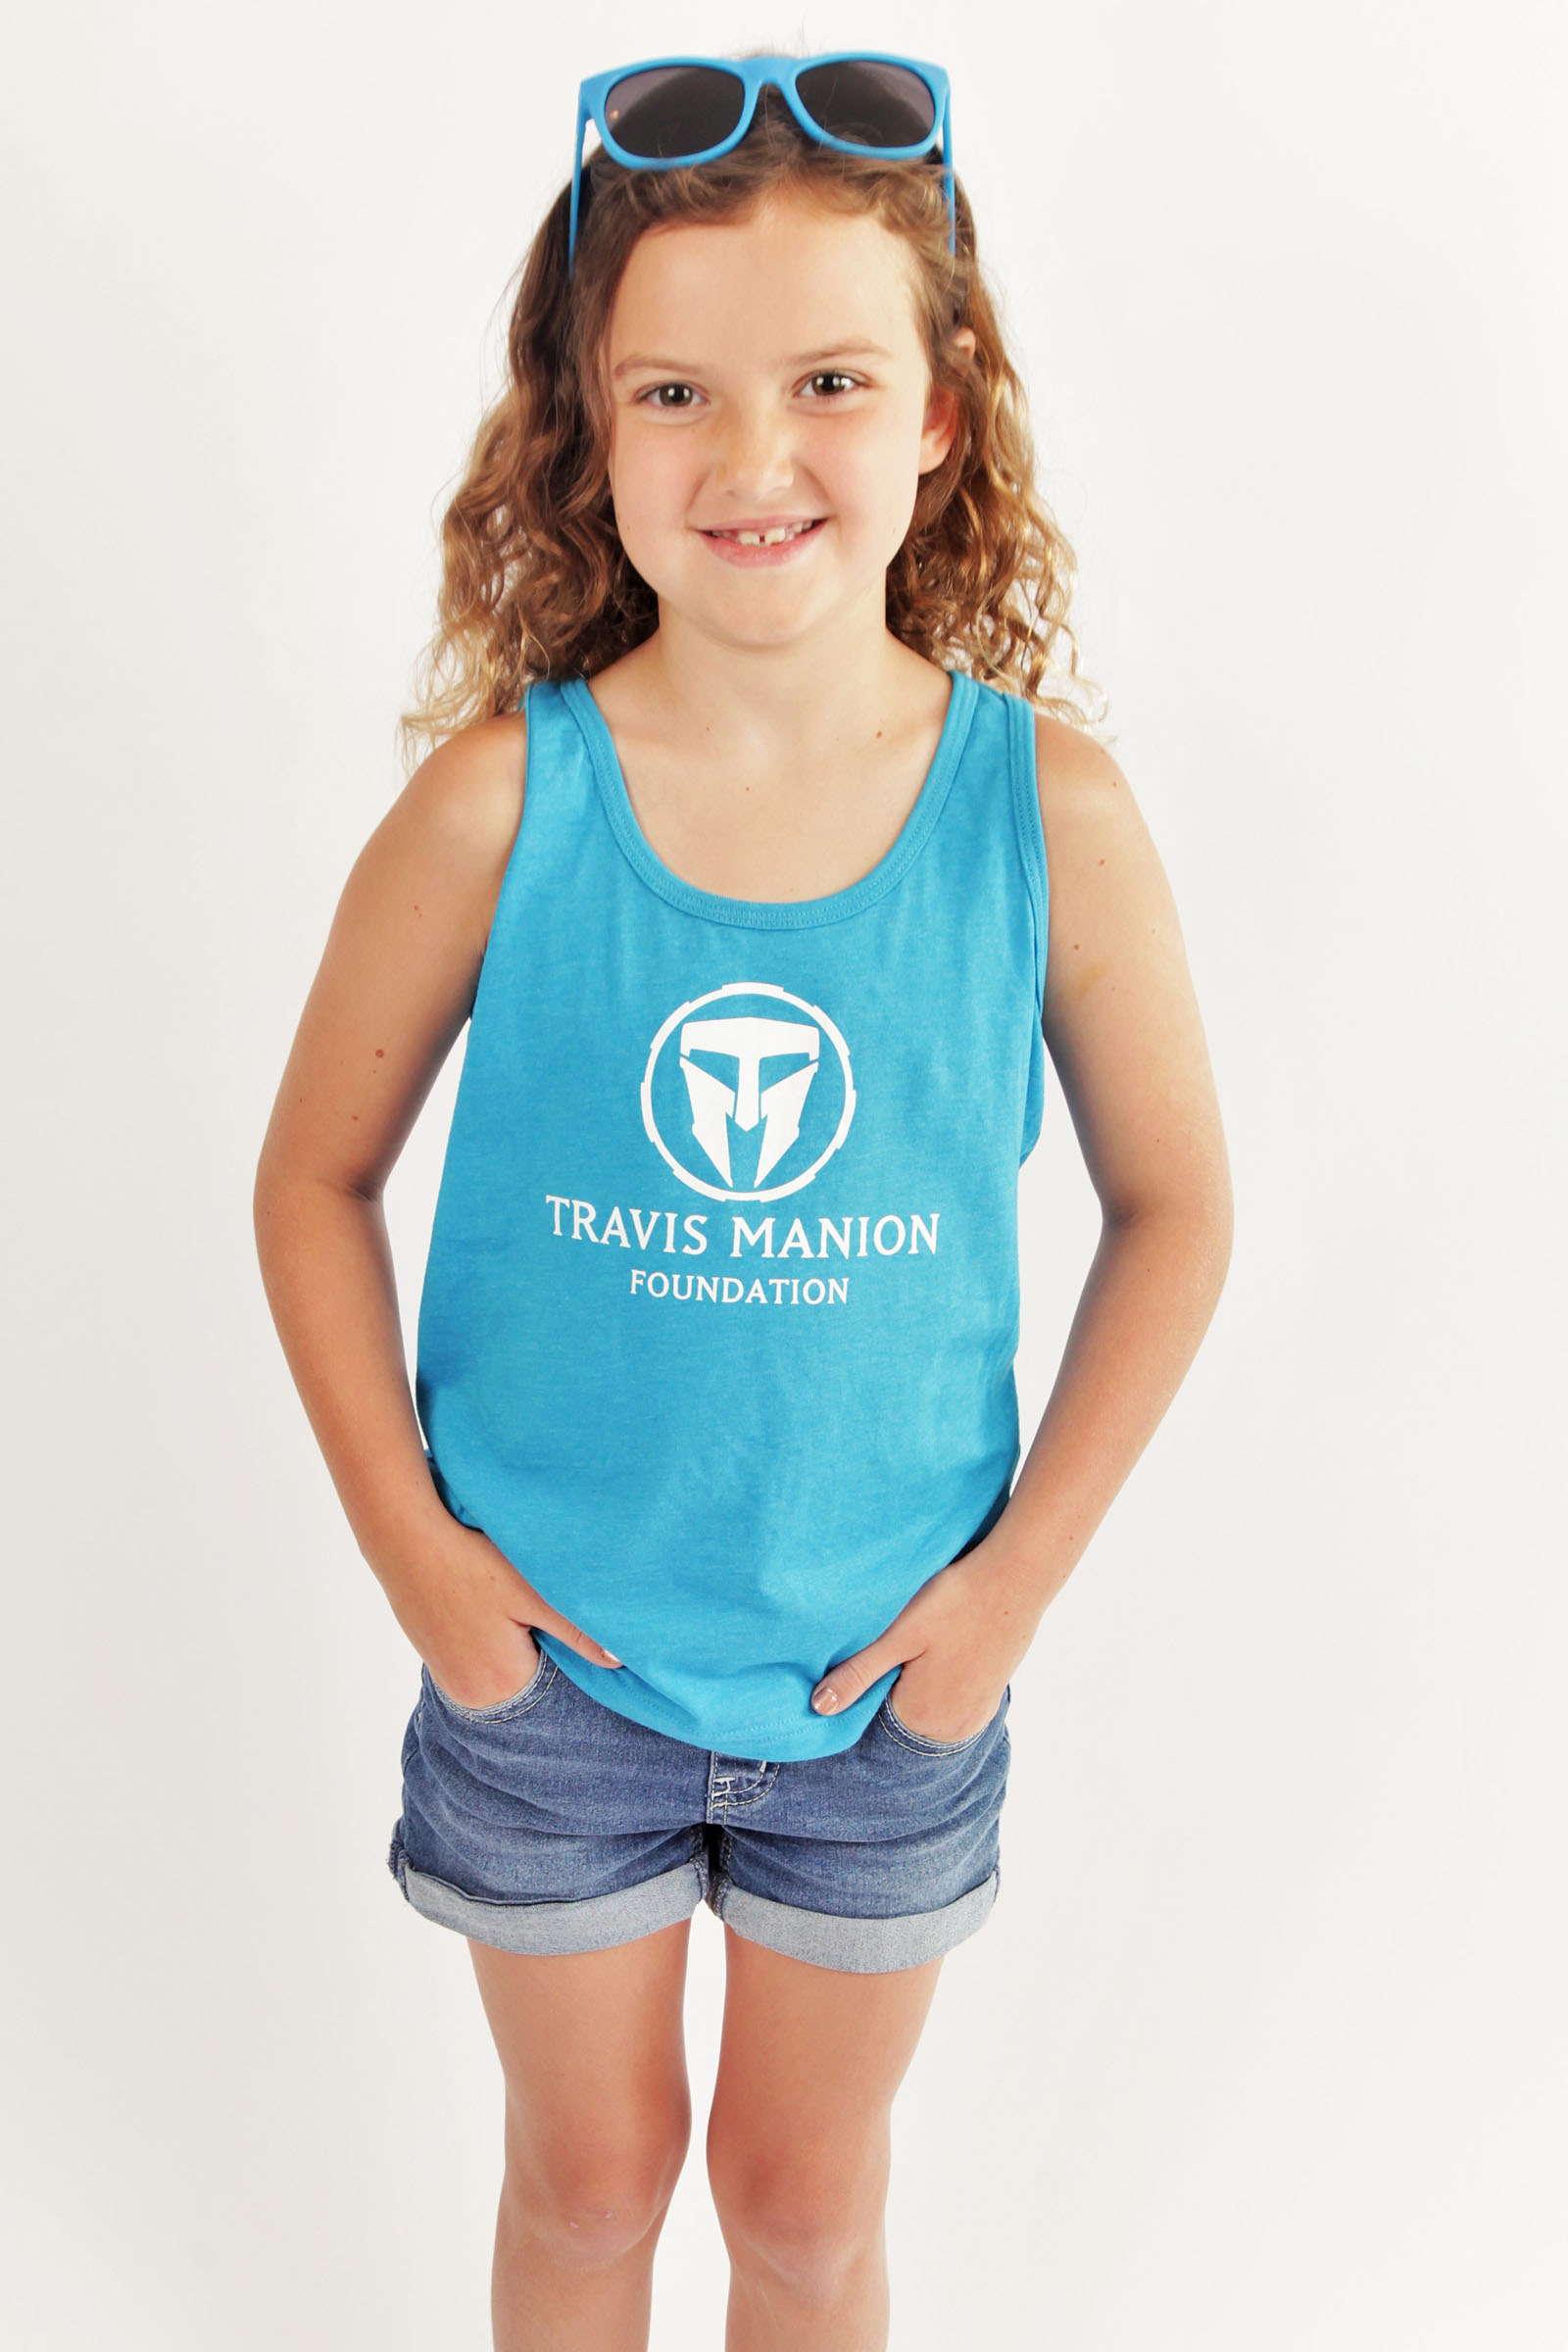 Travis Manion Foundation Neon Youth Tank